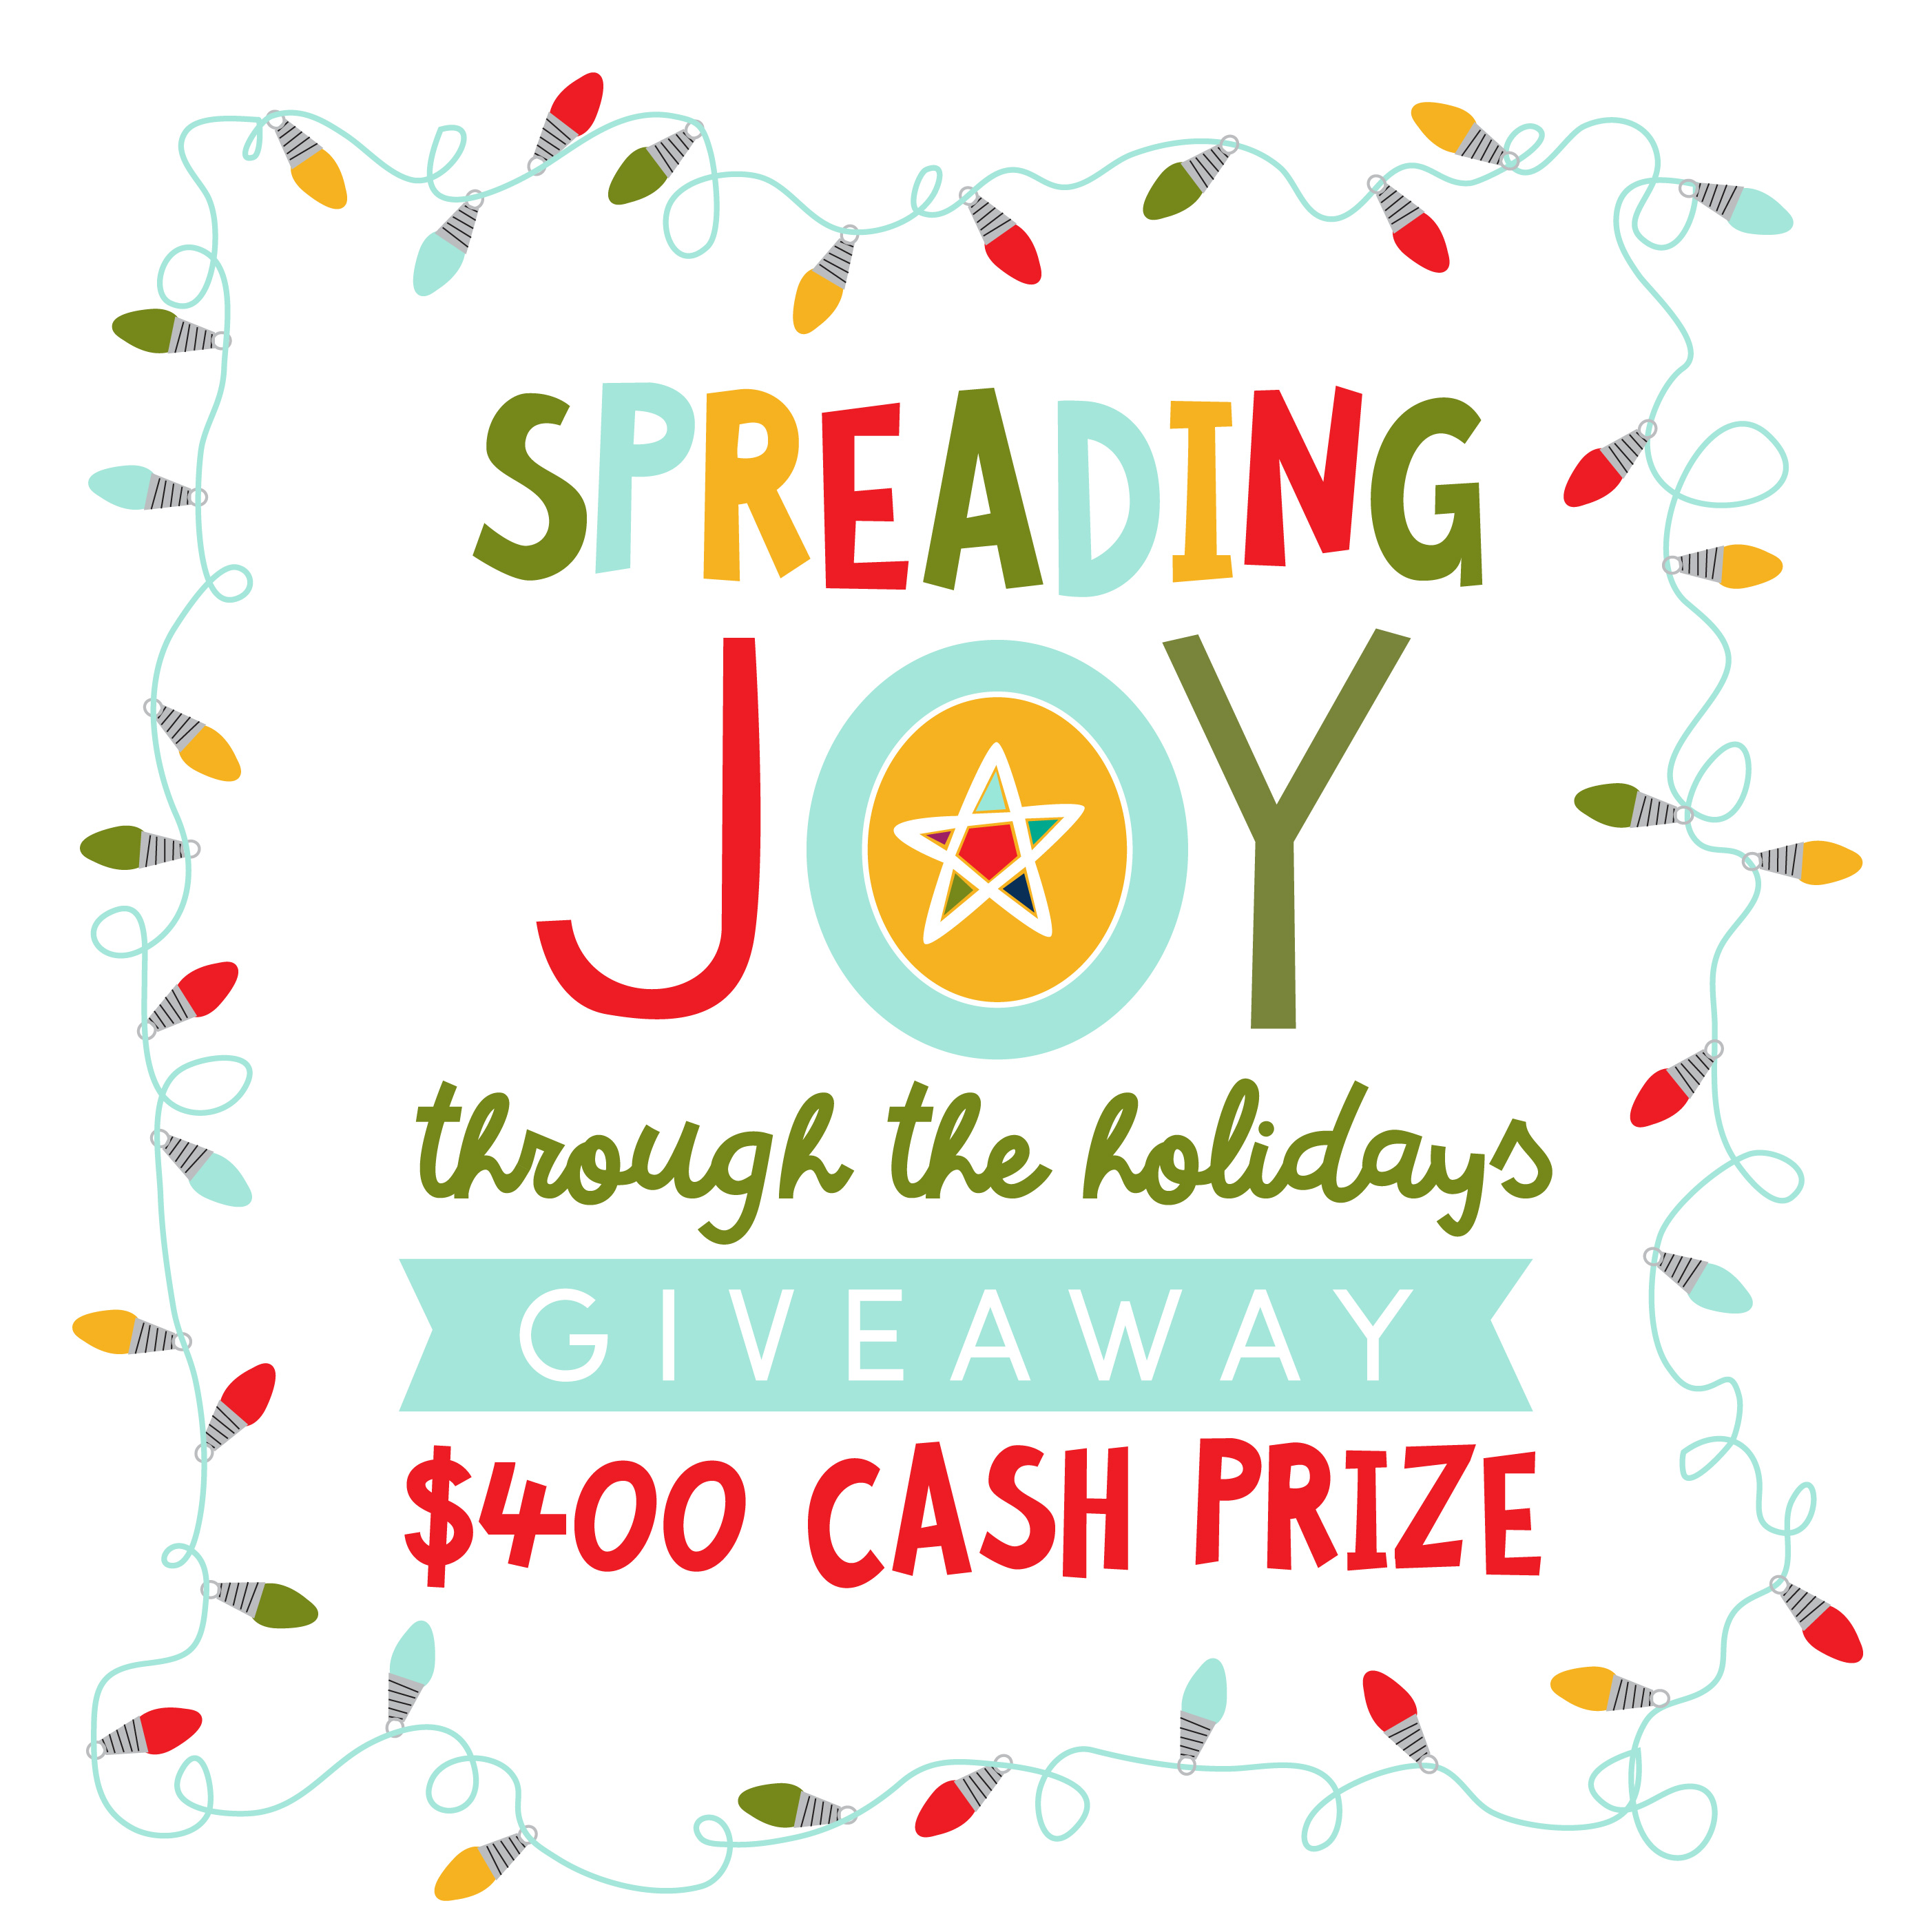 Remember to spread some joy this holiday season. To get things started, we want to spread some joy to you with a cash giveaway.